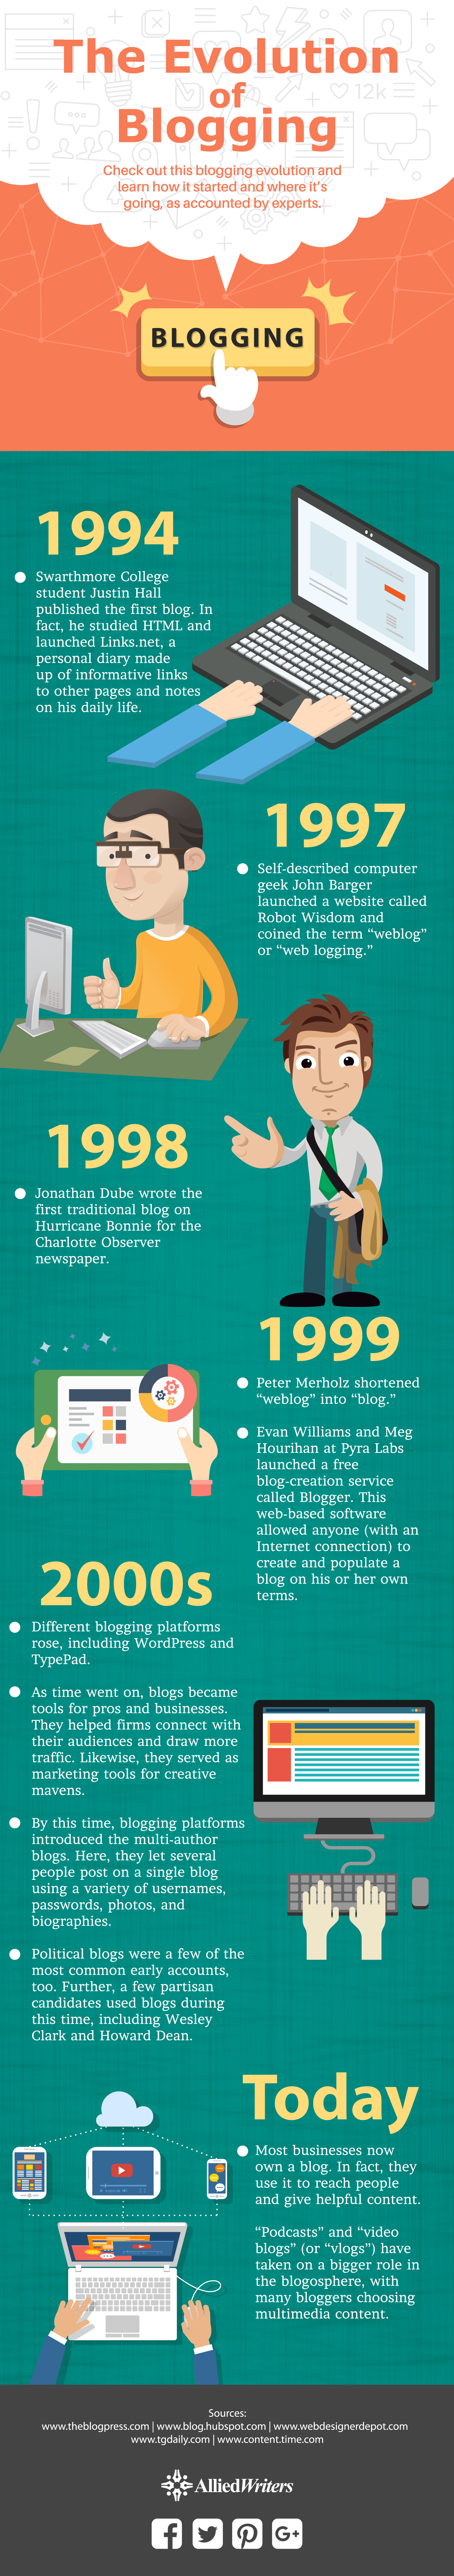 about blogging evolution: infographic